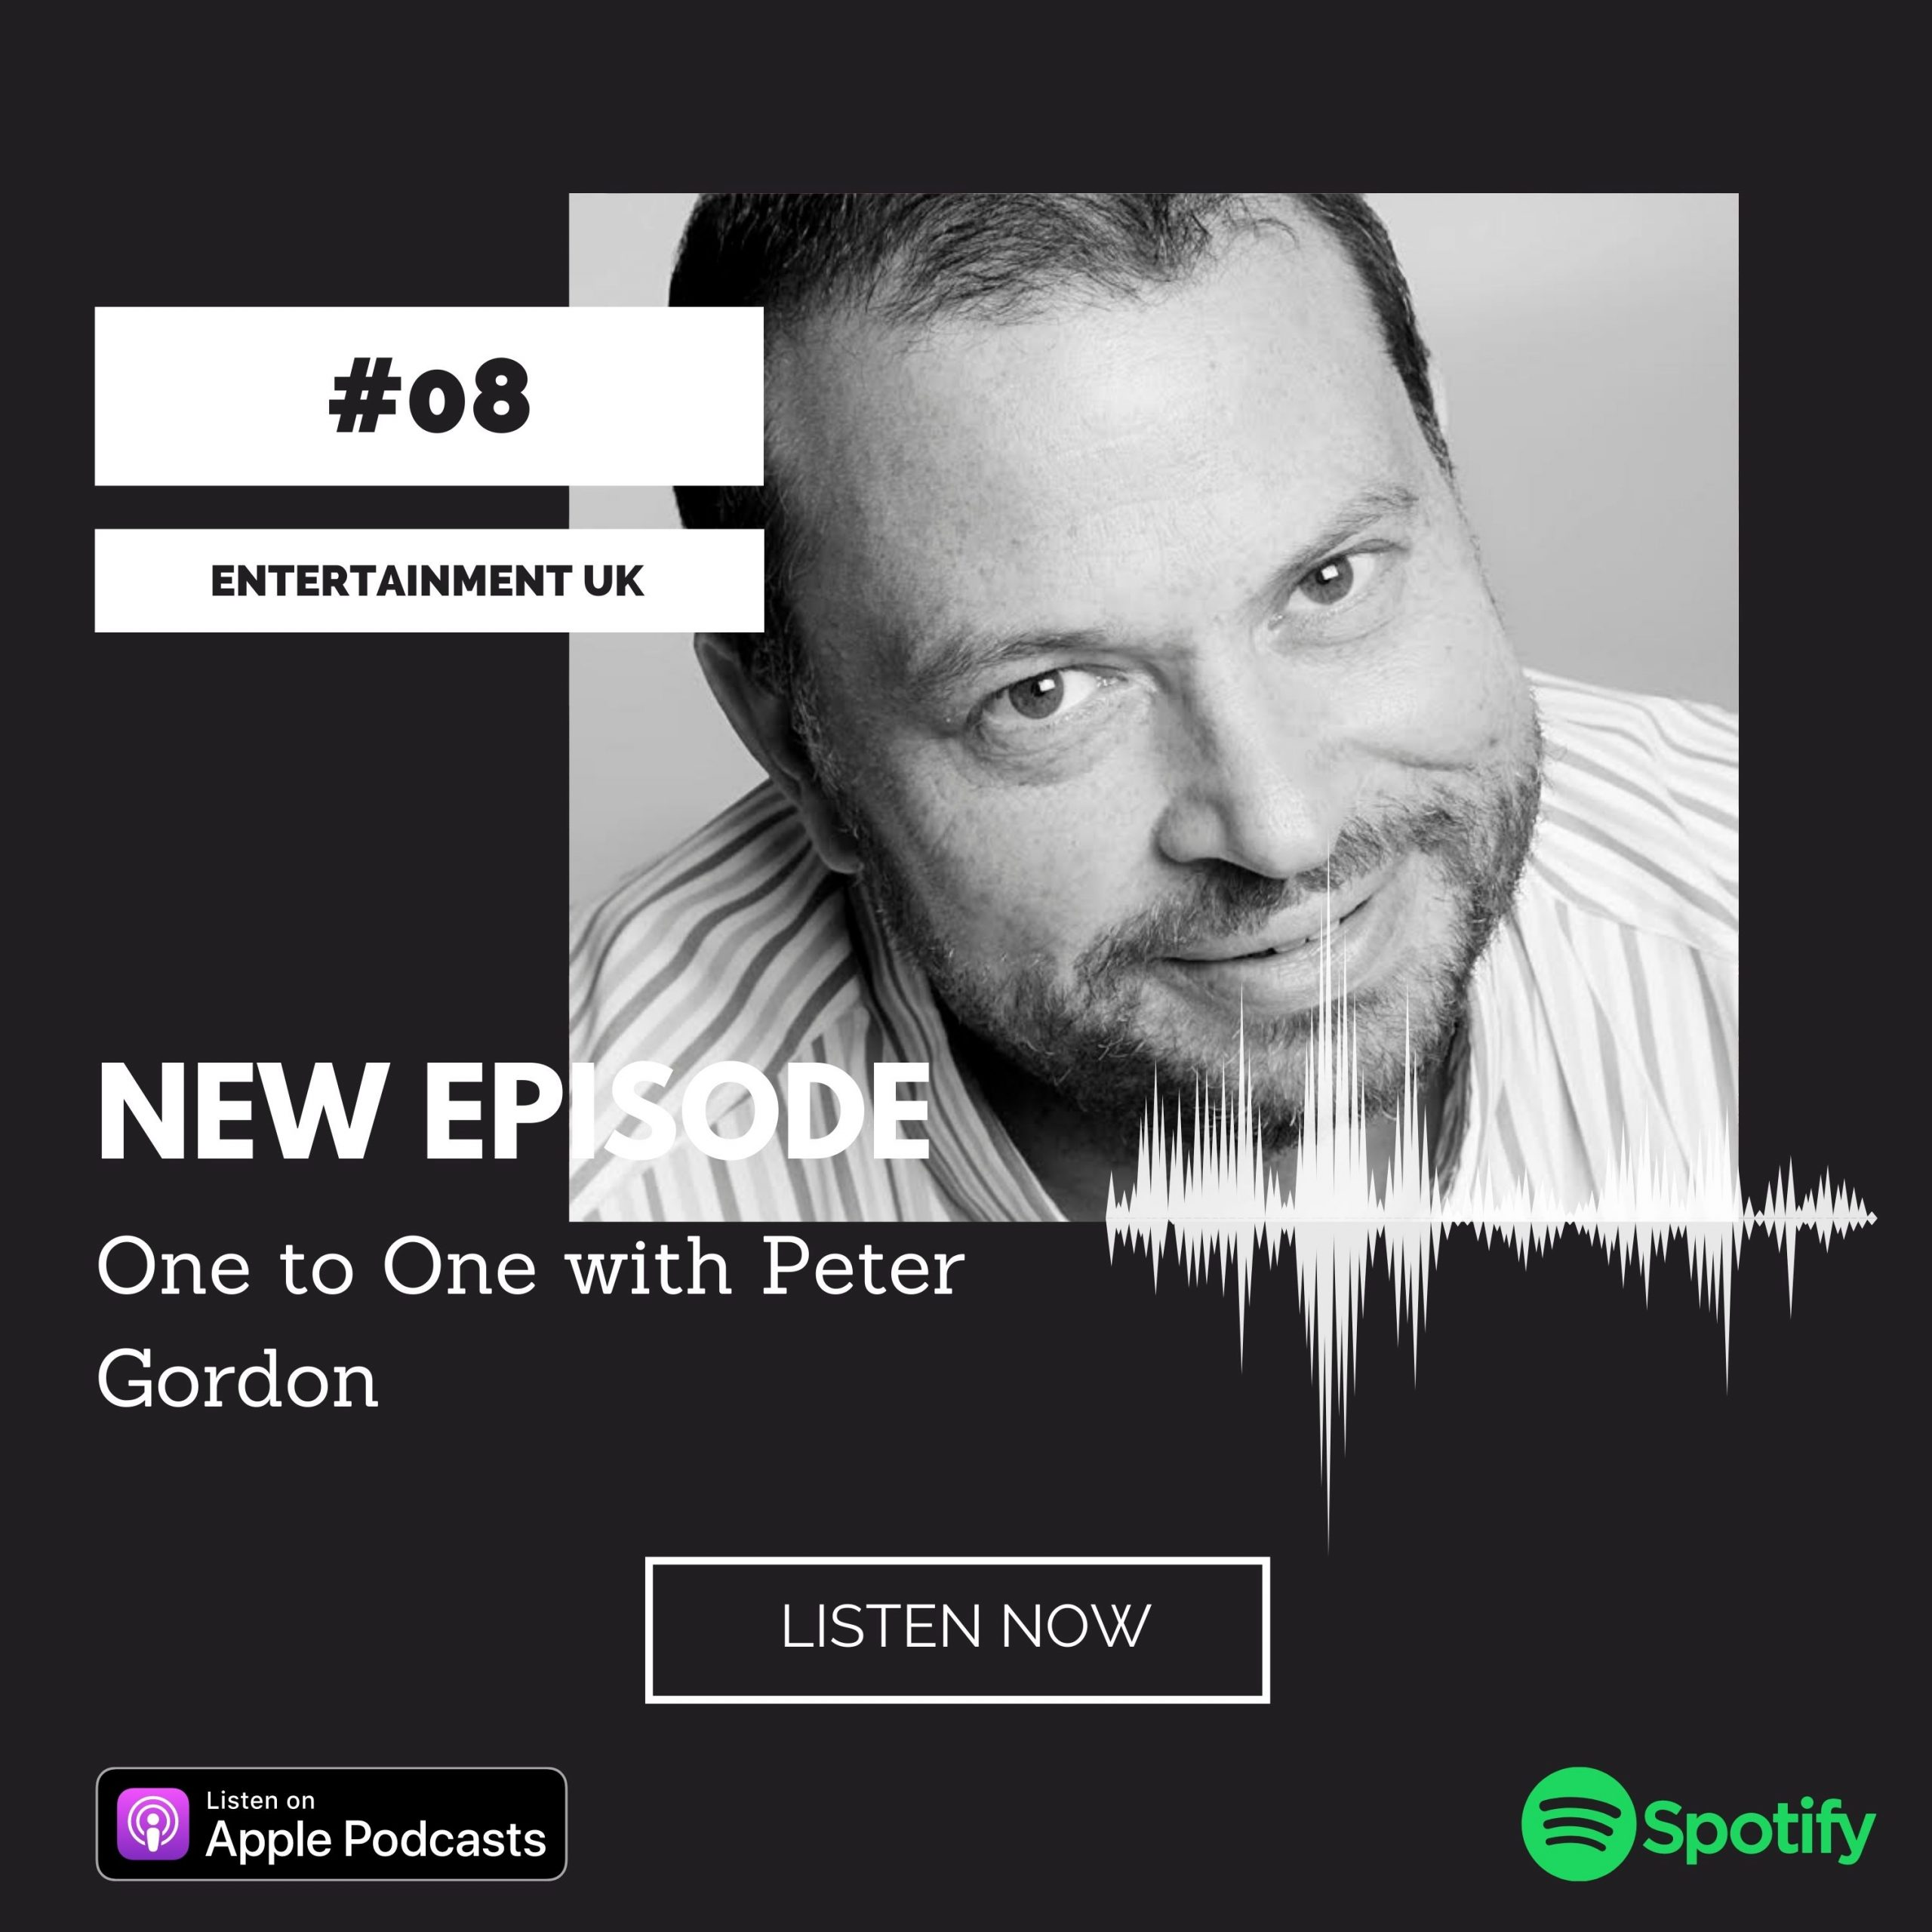 One to One with Peter Gordon